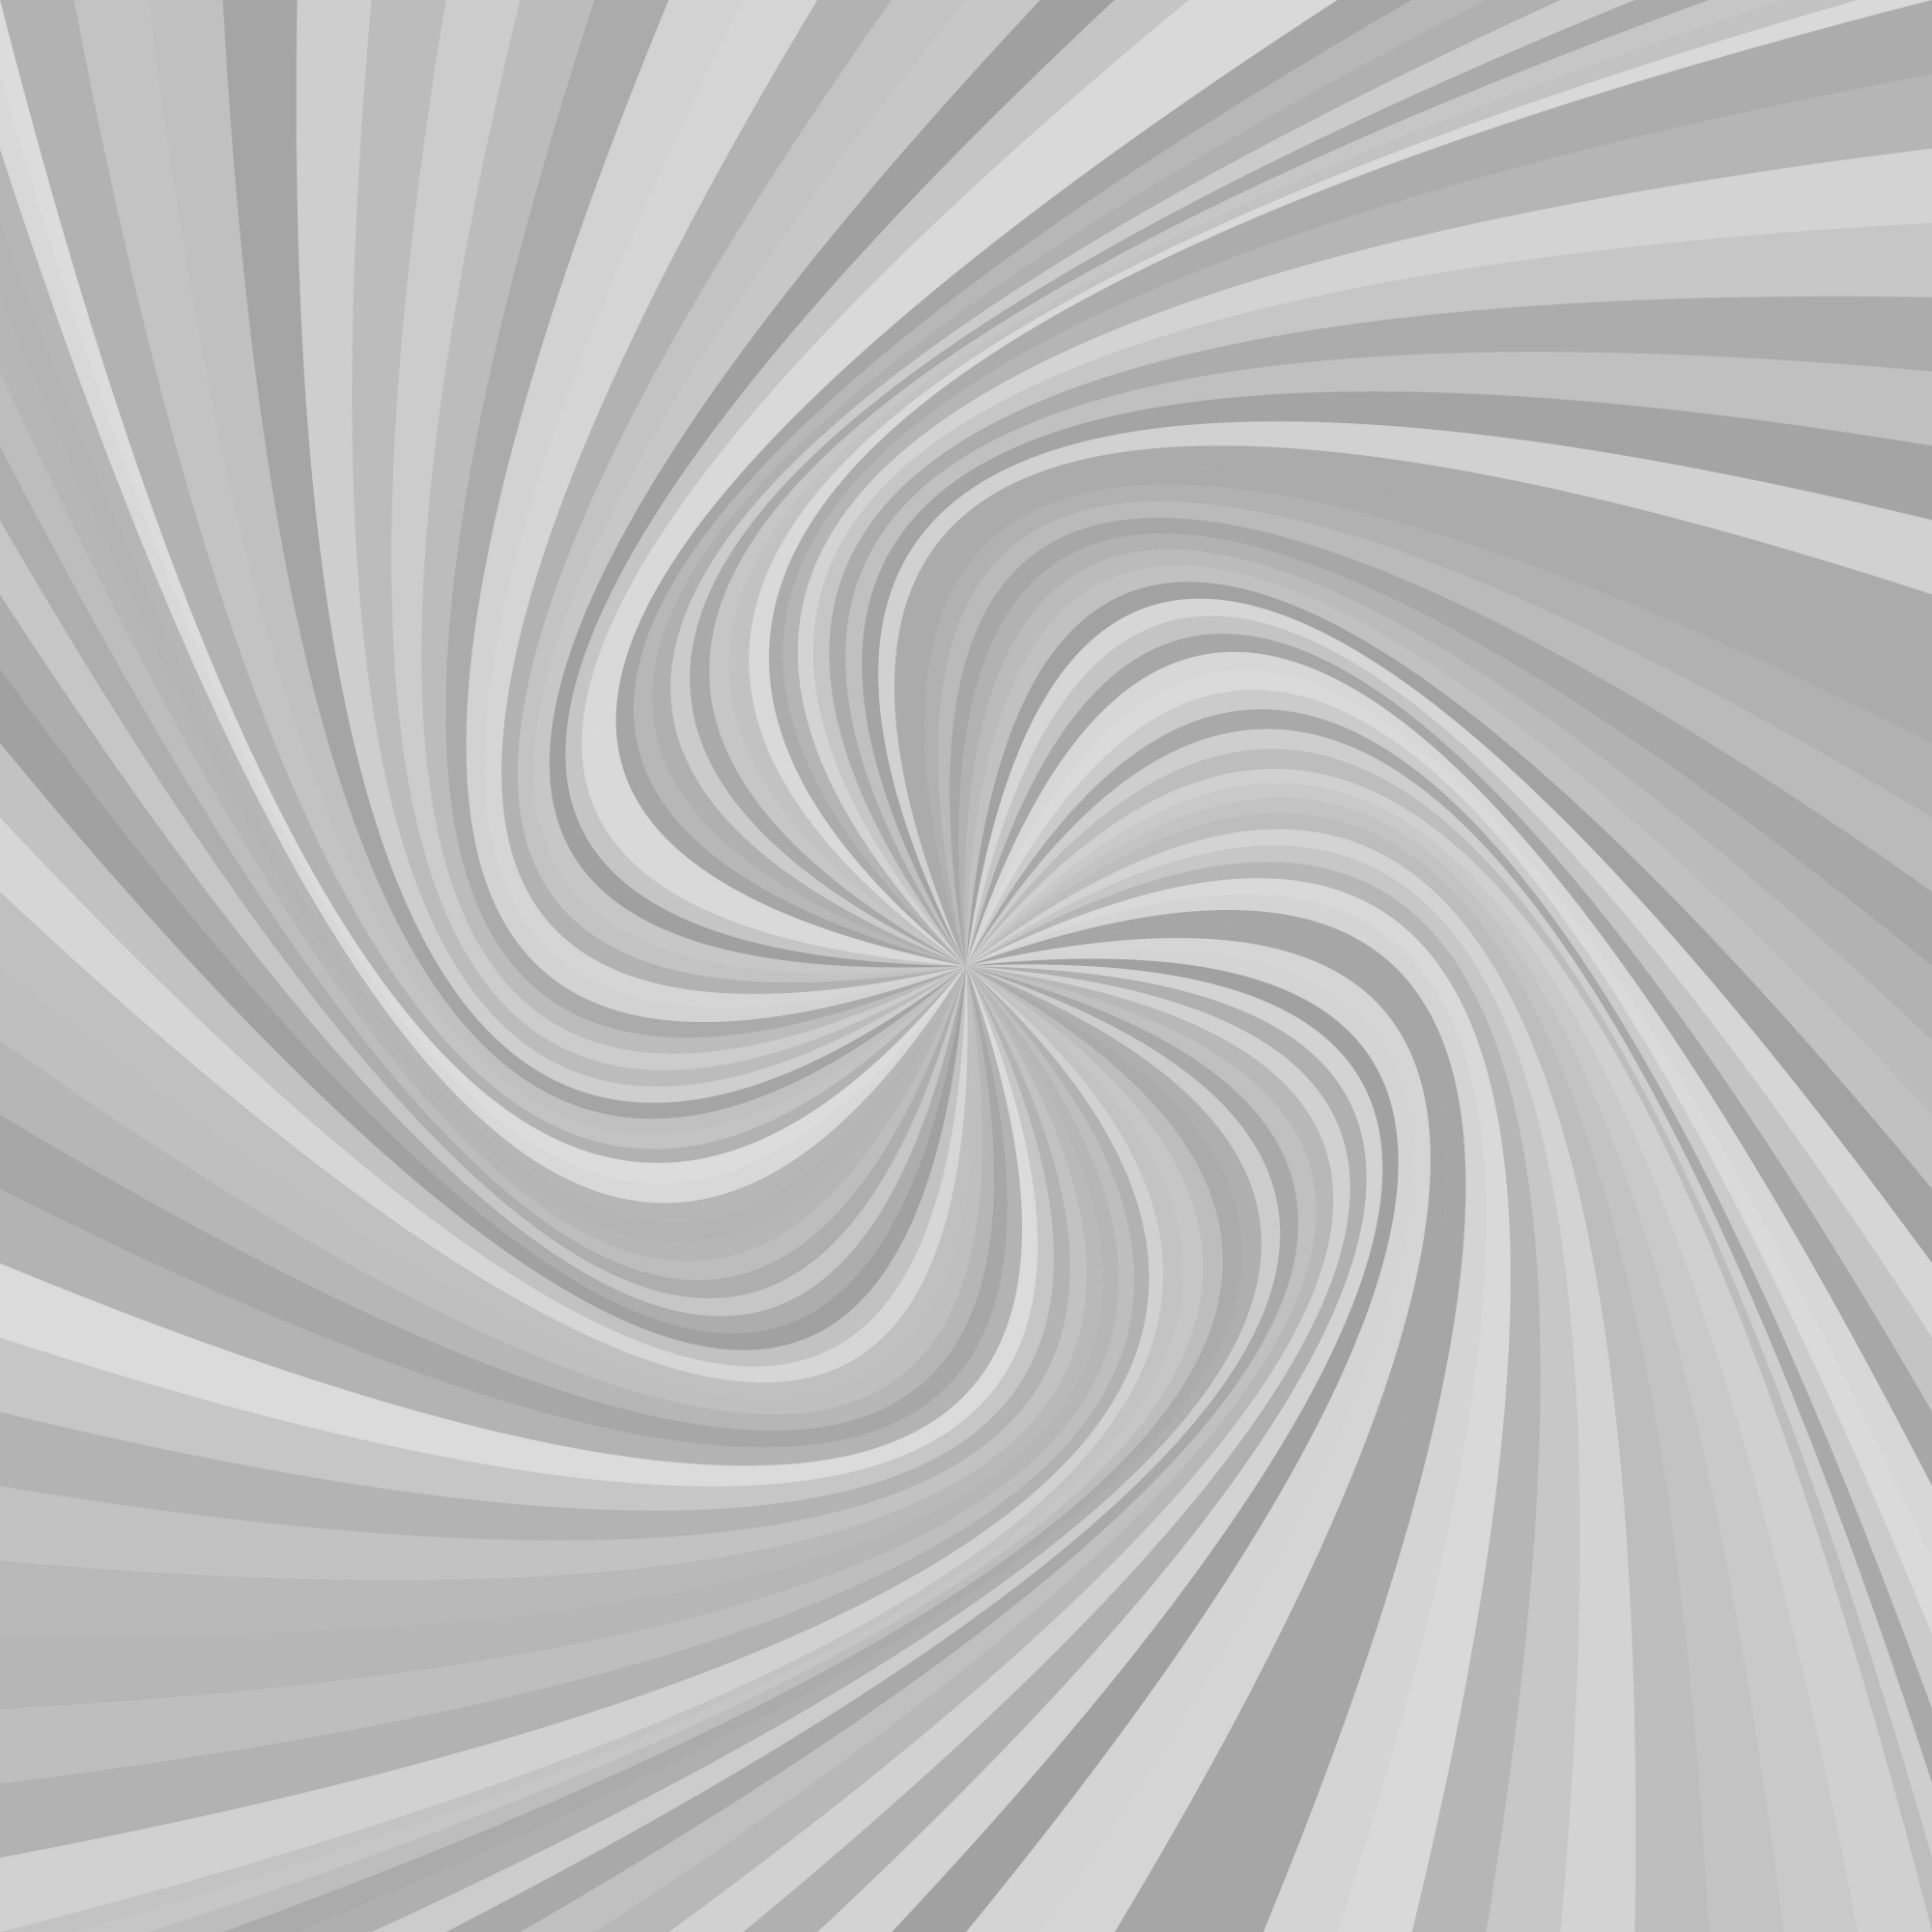 Abstract swirl background - vector illustration from rotated rays in grey tones